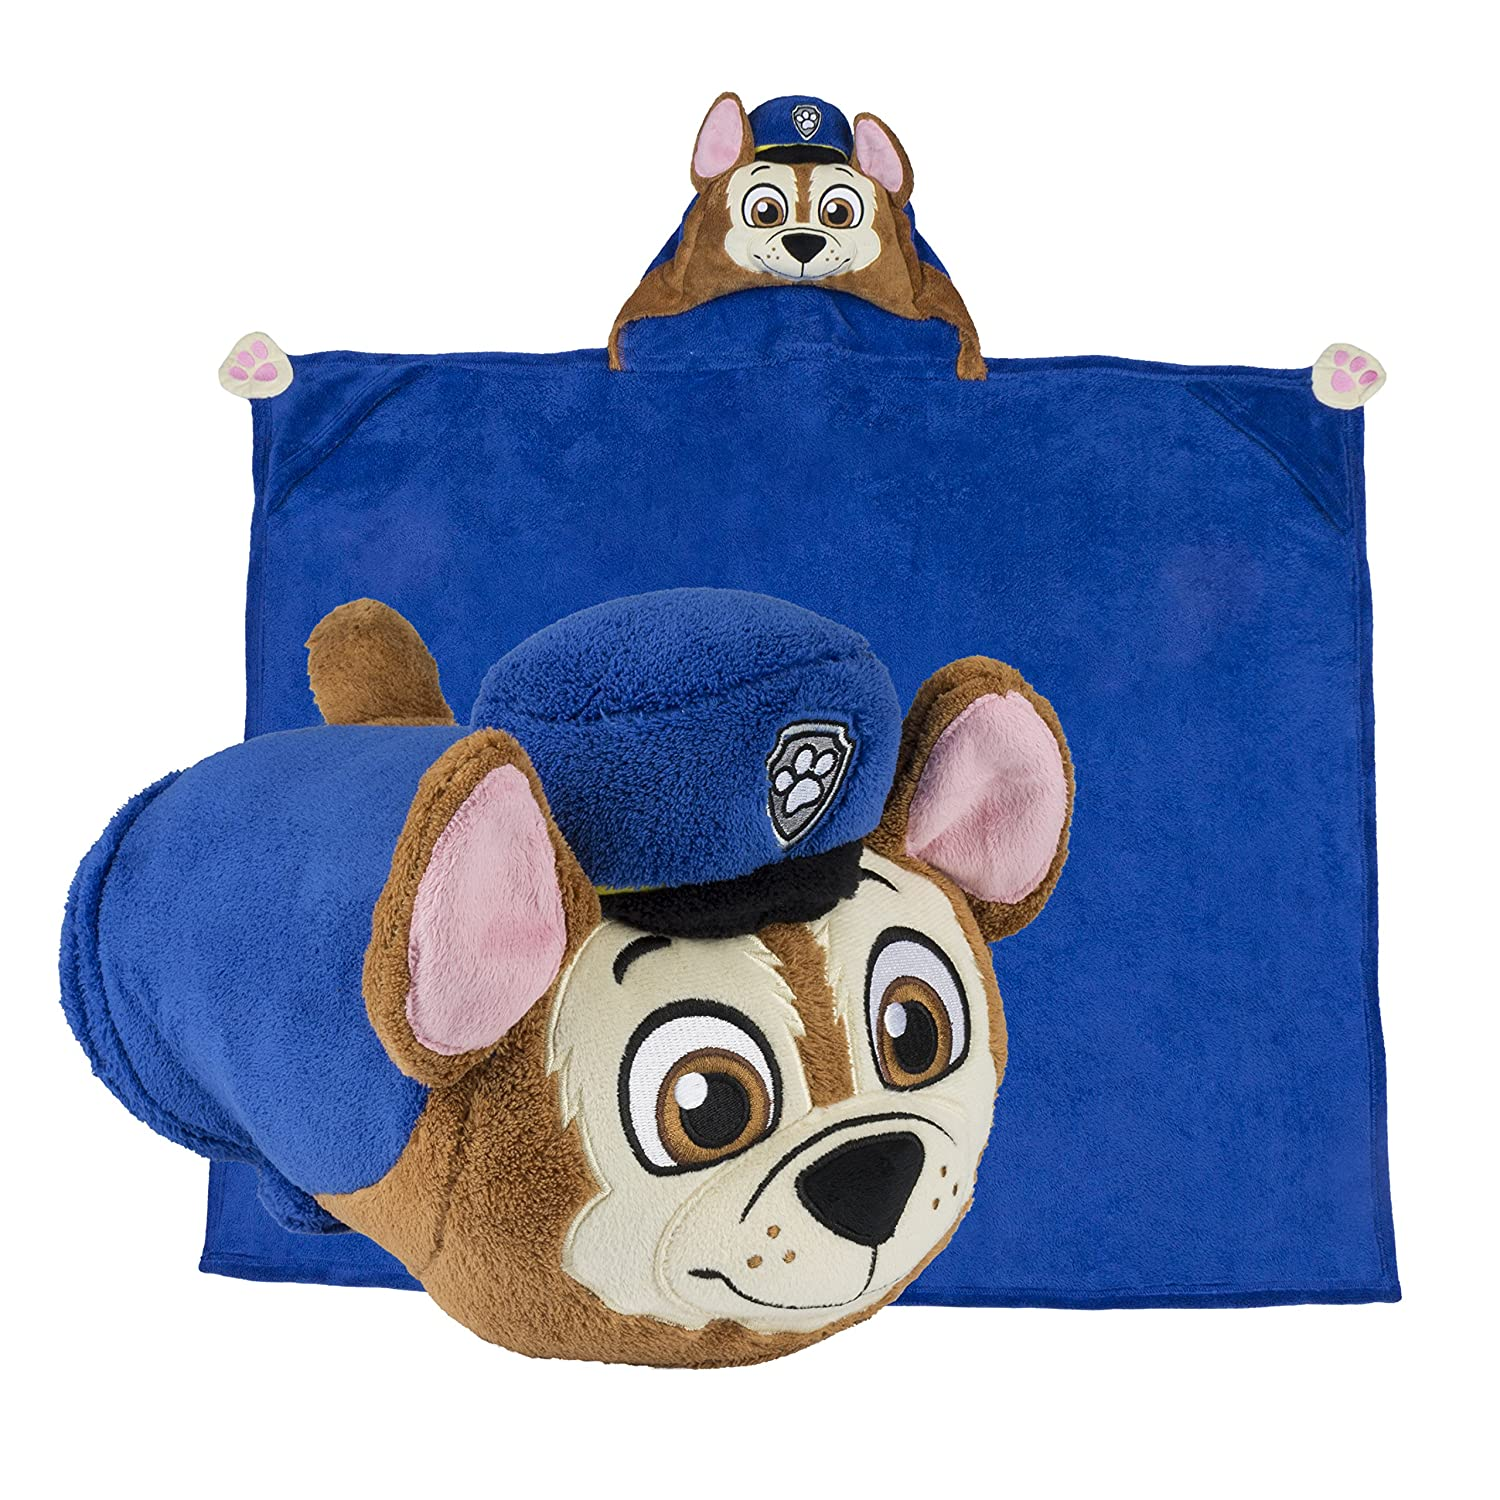 Stuffed Animal Blanket & Pillow; PAW Patrol Chase